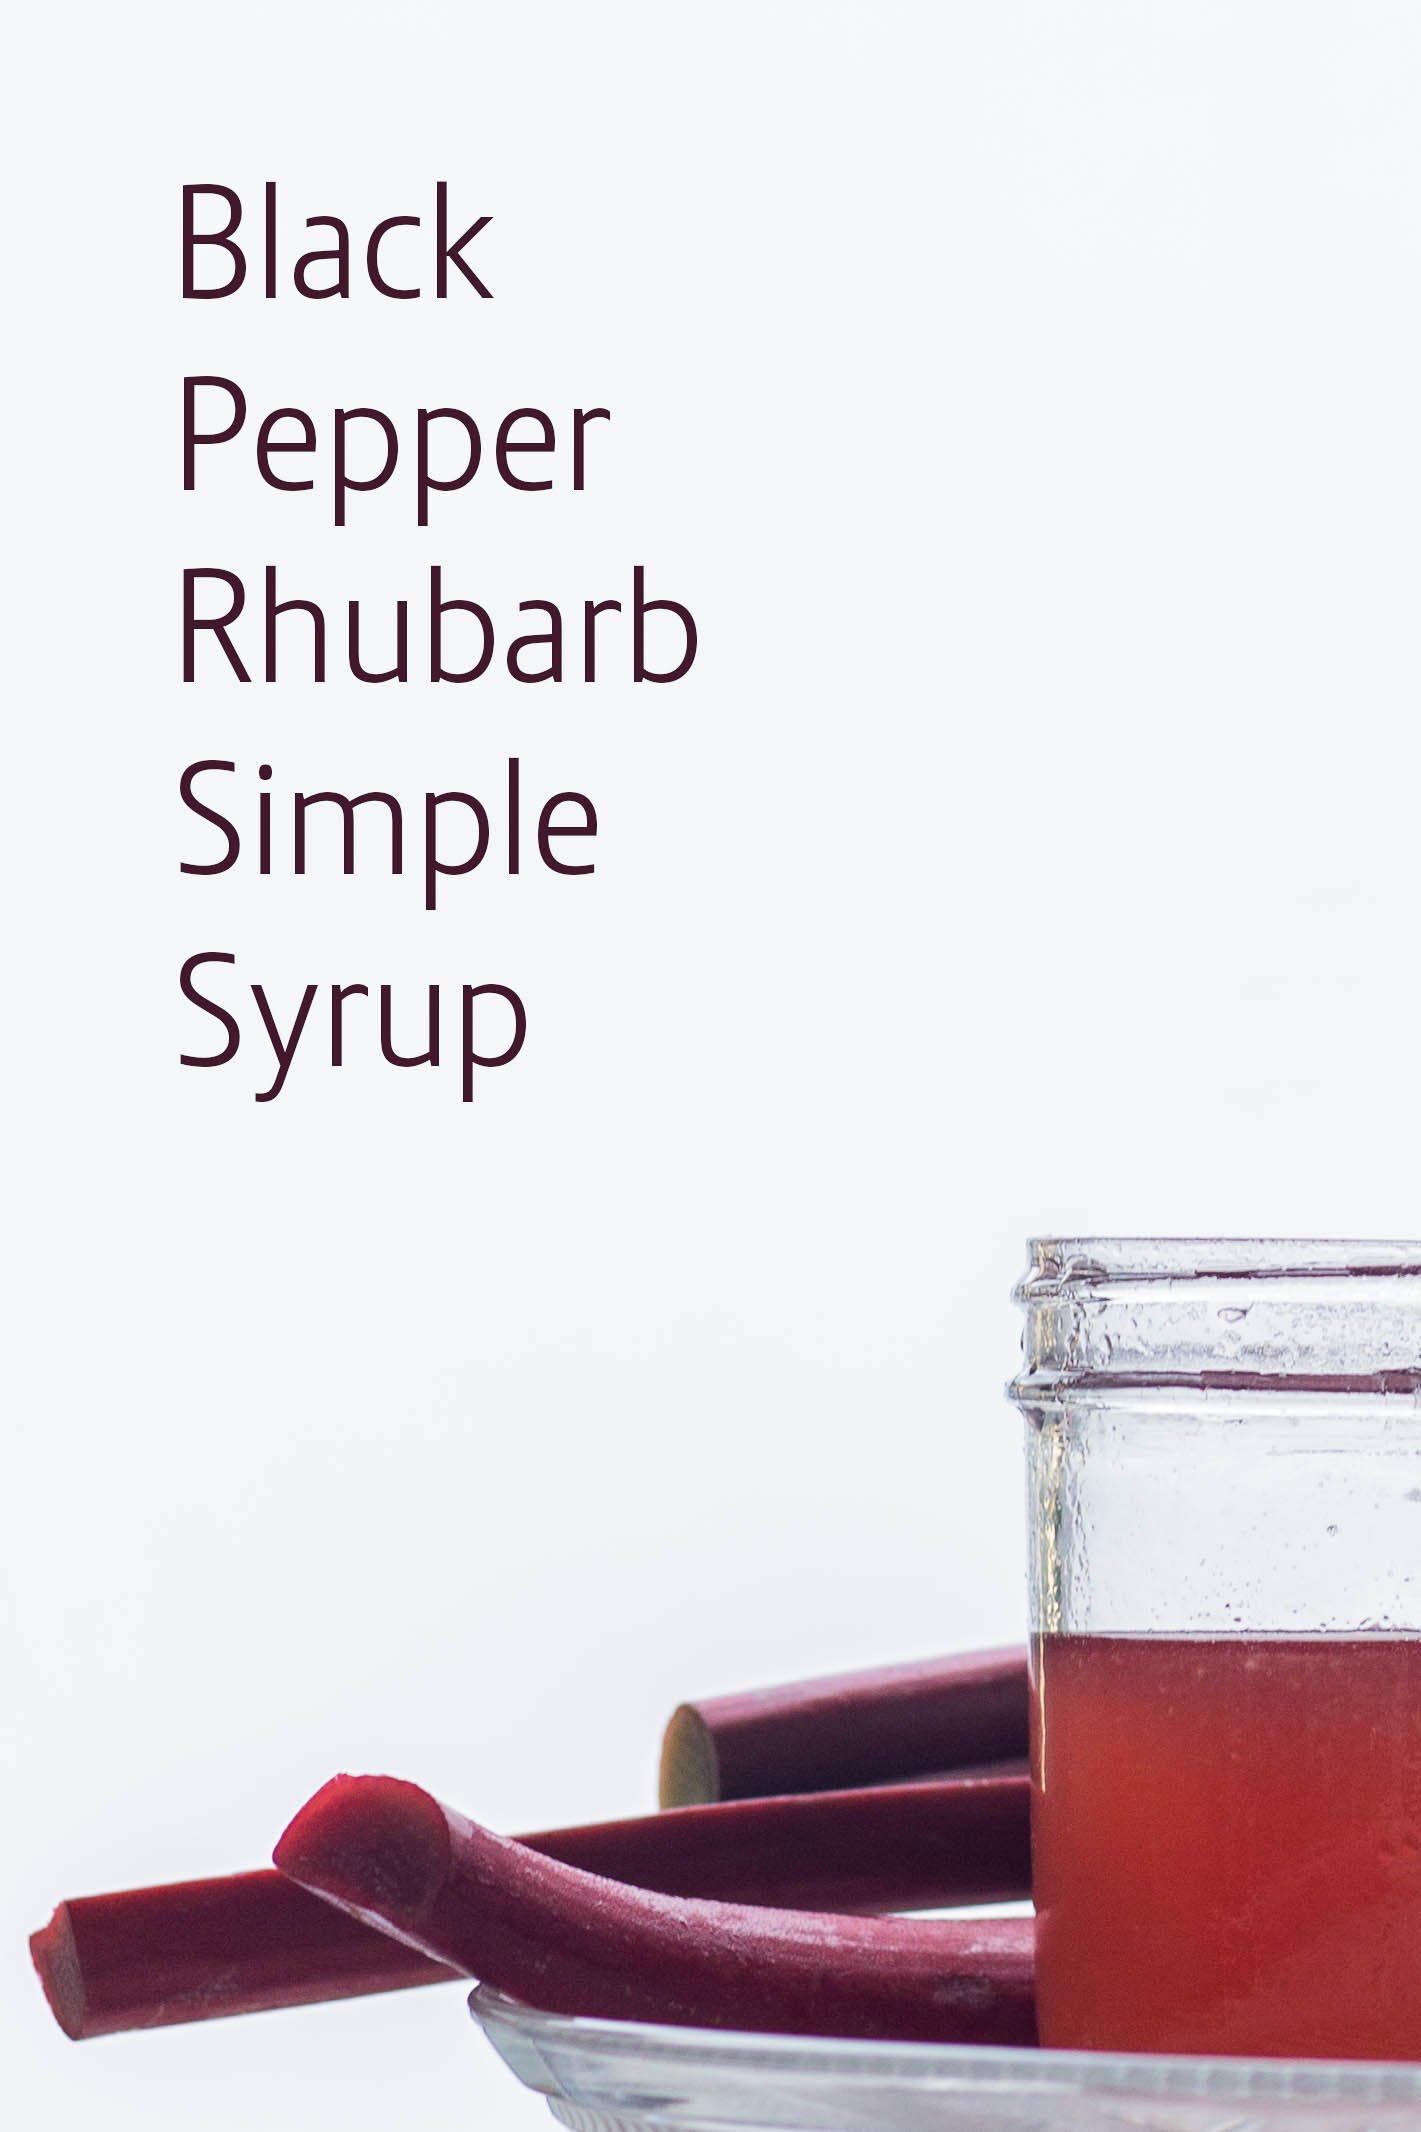 Black Pepper Rhubarb Simple Syrup